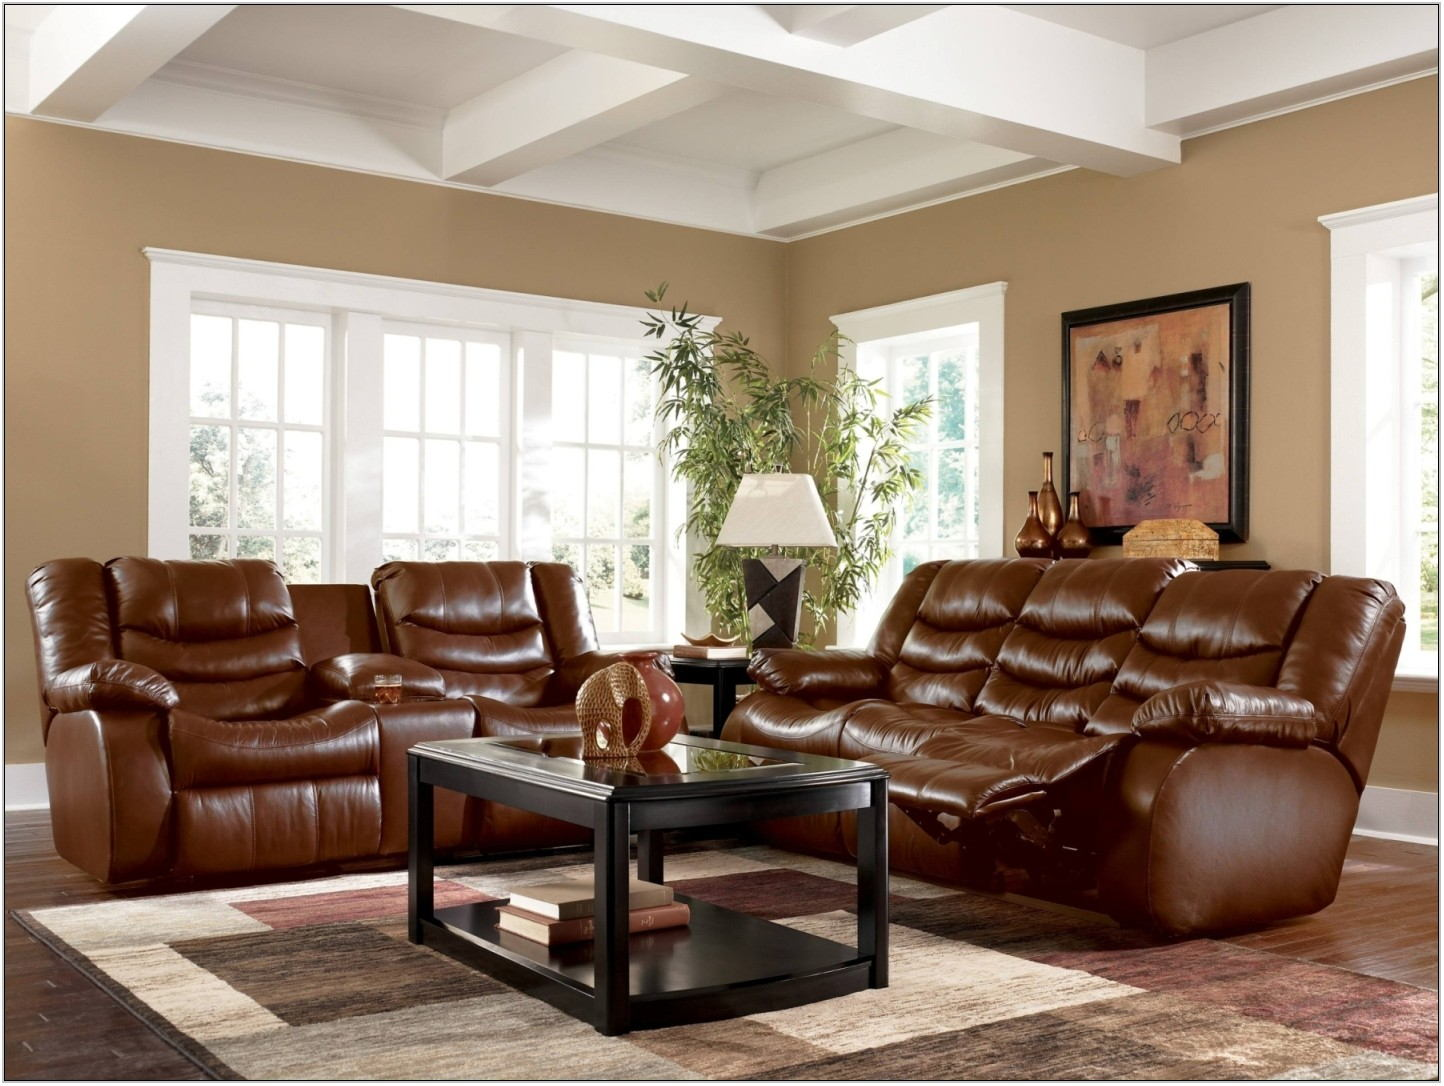 Couch Chairs For Living Room